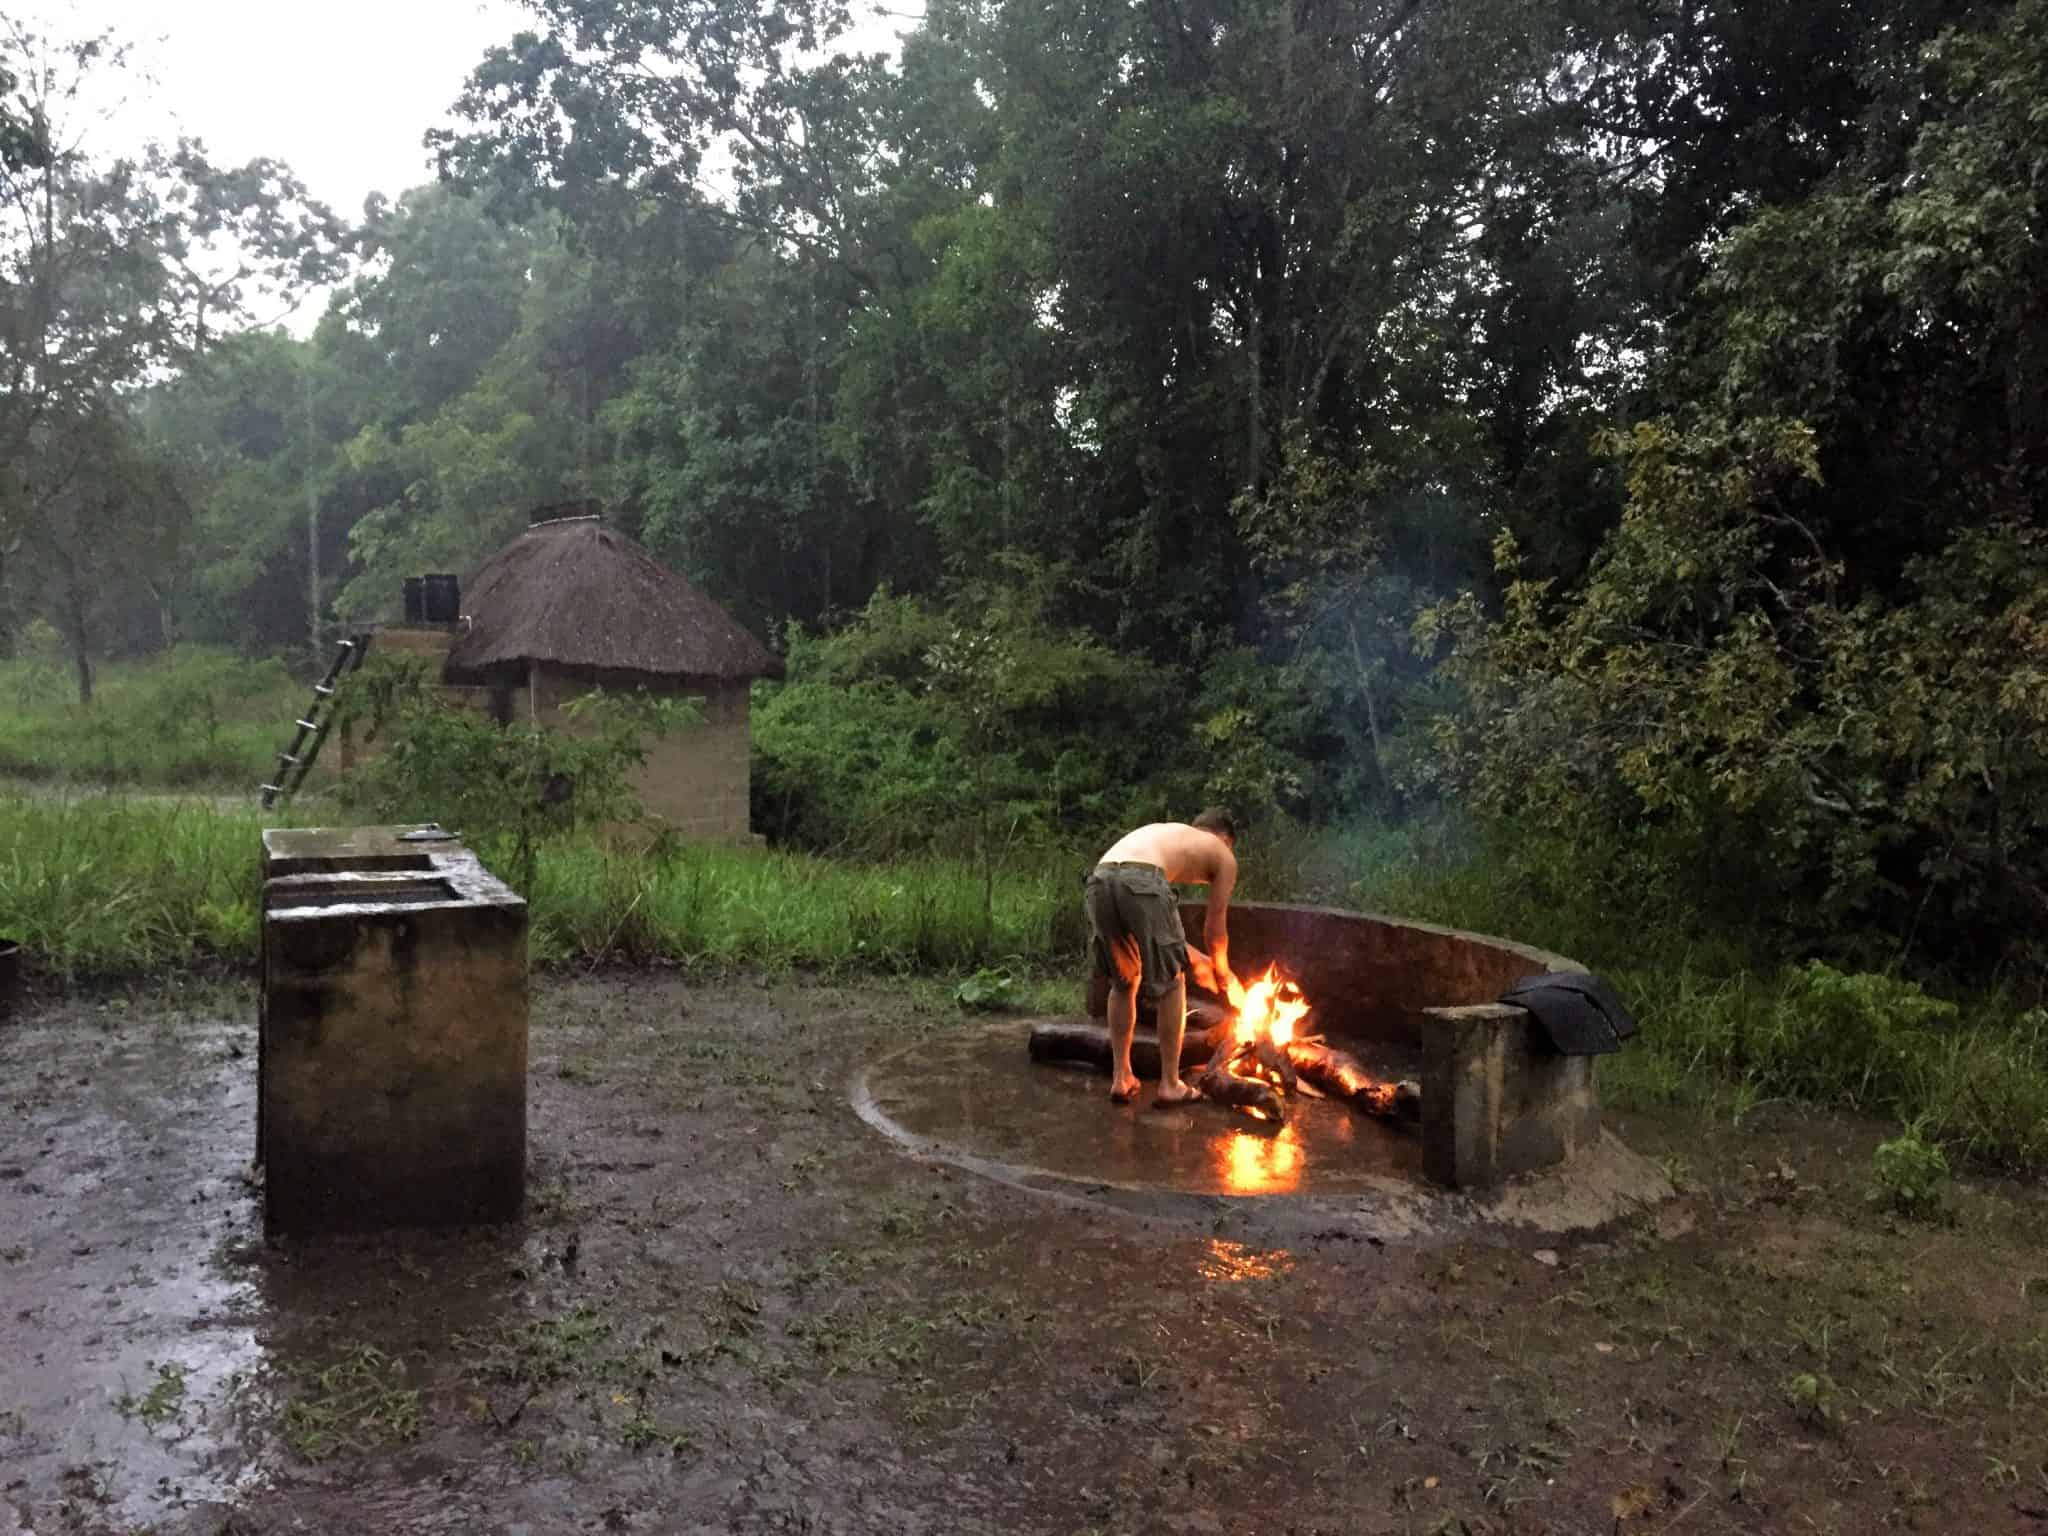 Stoking the fire in the rainy season of Zambia in Kasanga National Park